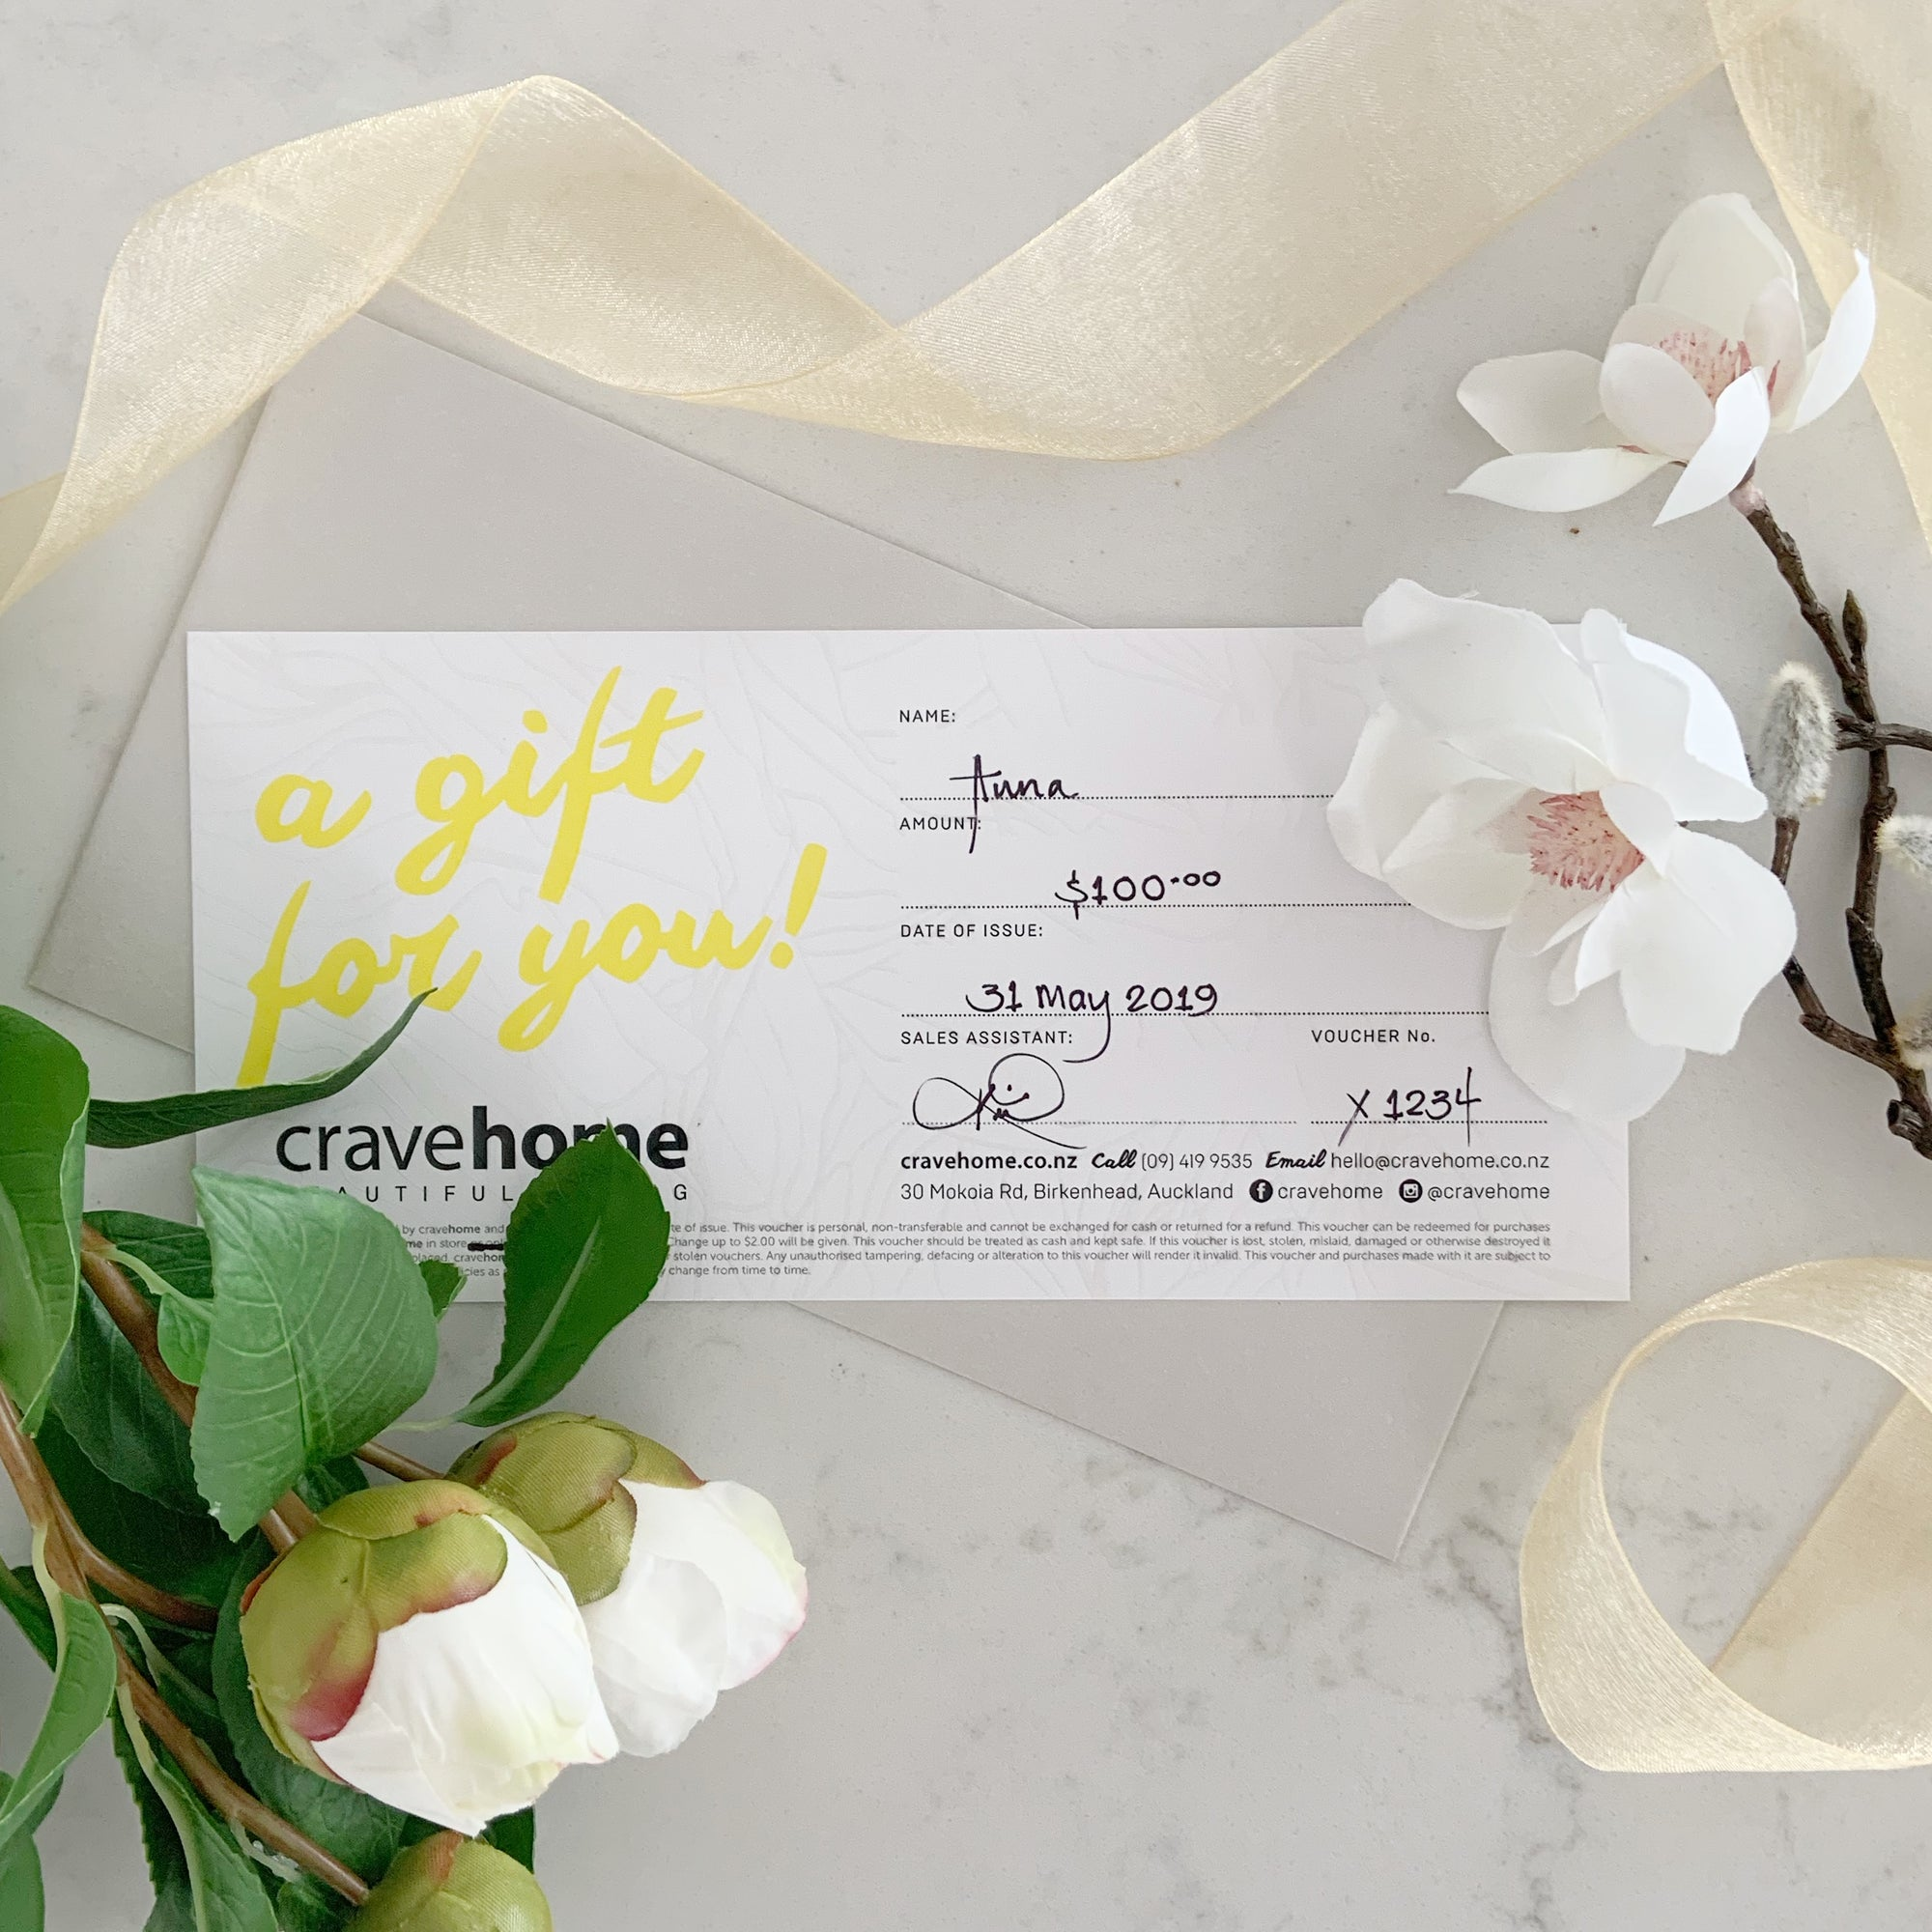 cravehome $100 Gift Card